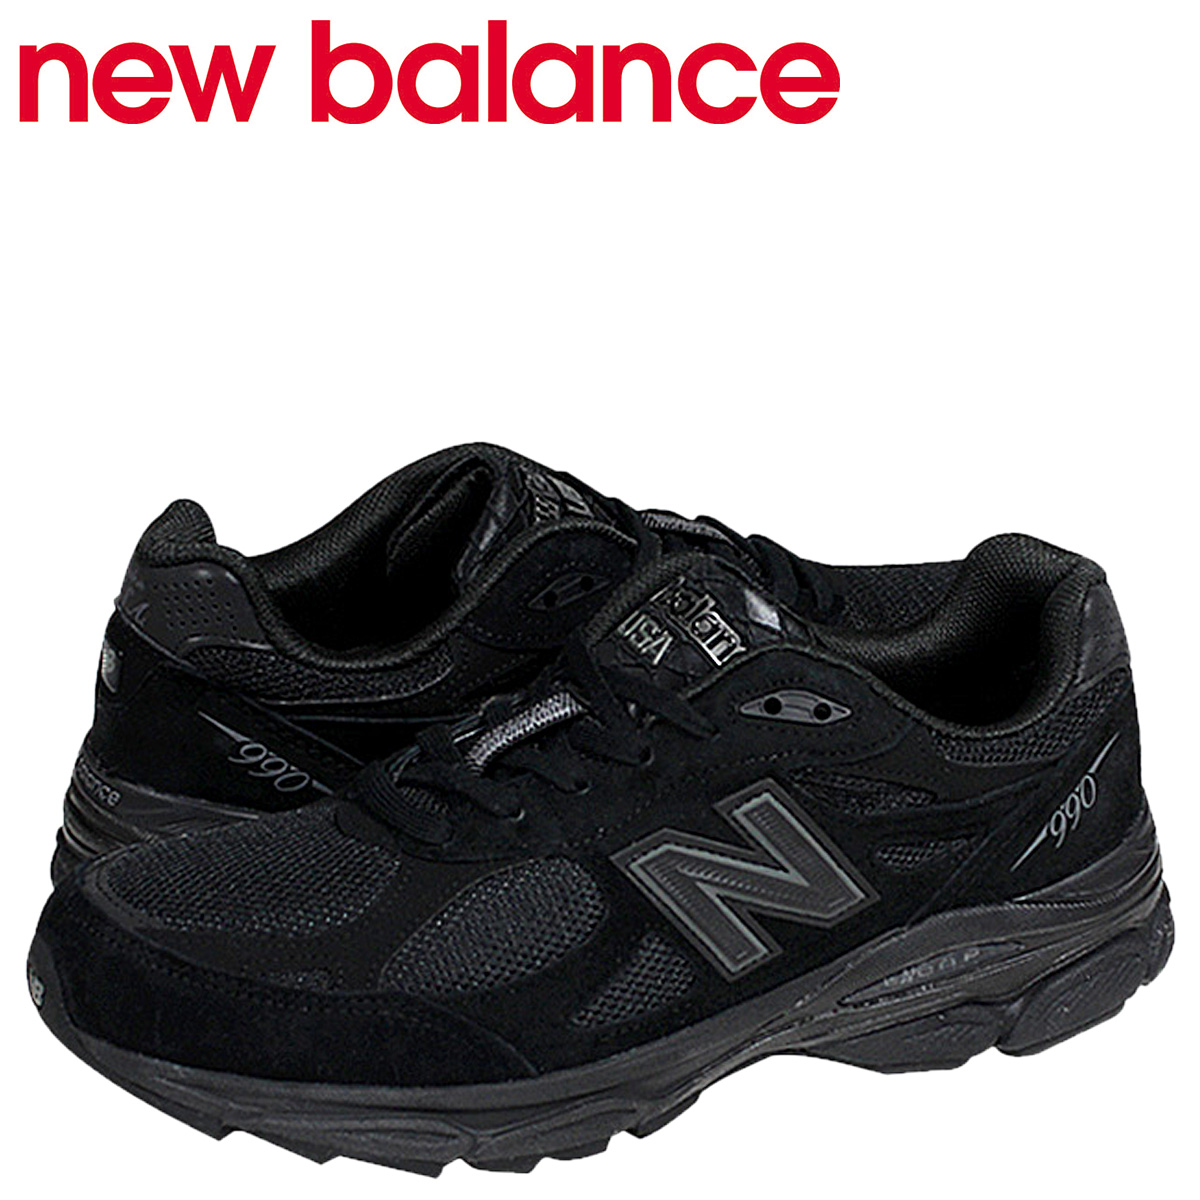 new balance trainers for flat feet